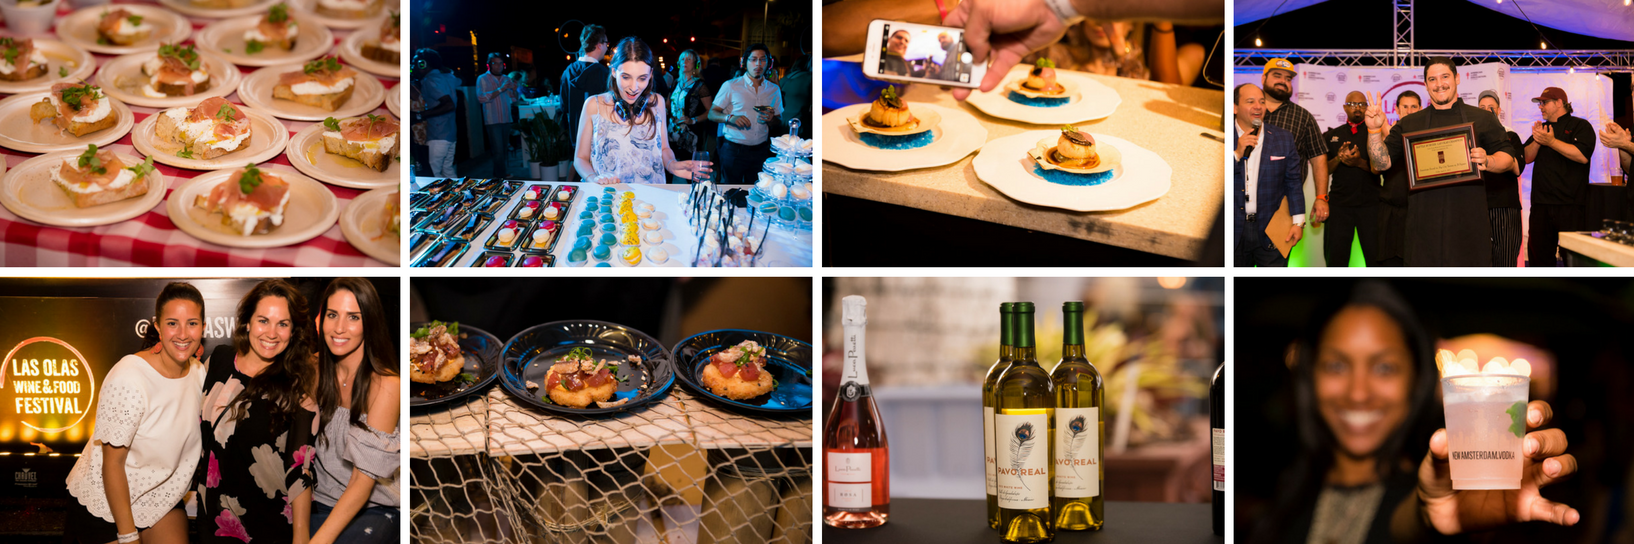 las olas wine and food festival belle strategies social media marketing